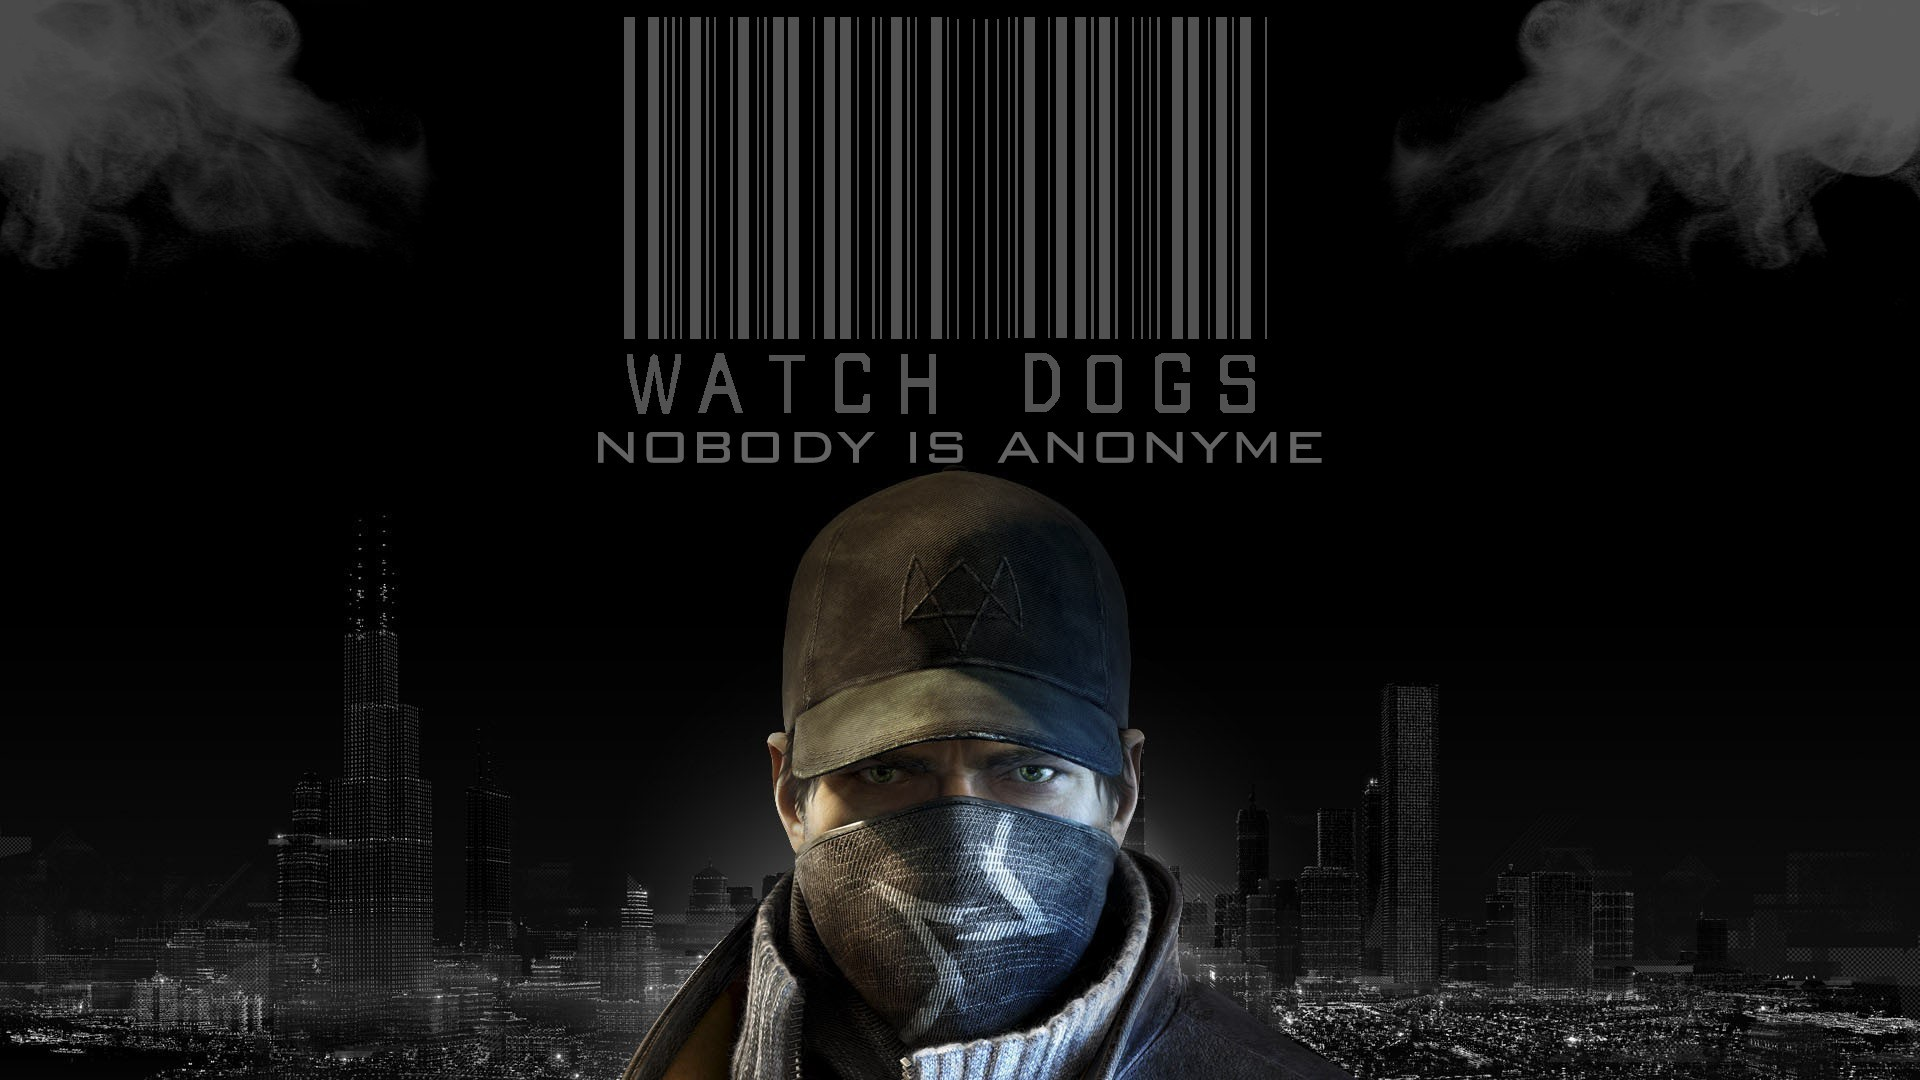 Watch Dogs 2 Wallpaper 1920x1080: Ps4 Wallpapers HD 1080p (82+ Images